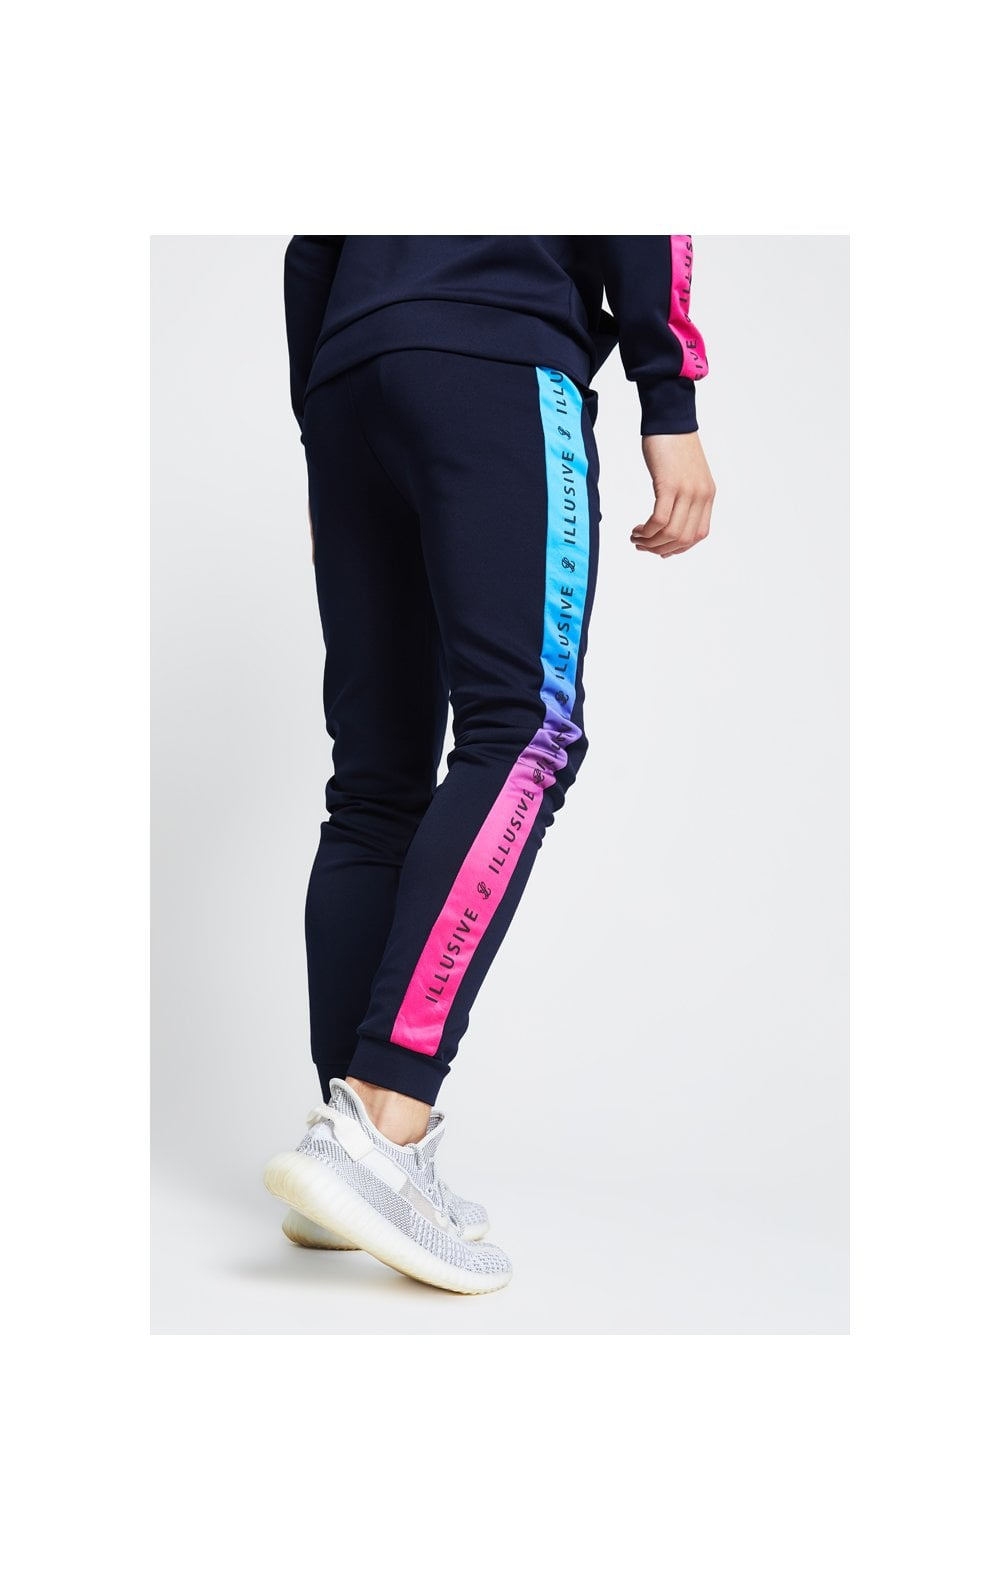 Illusive London Fade Panel Cuffed Joggers - Navy & Pink (3)